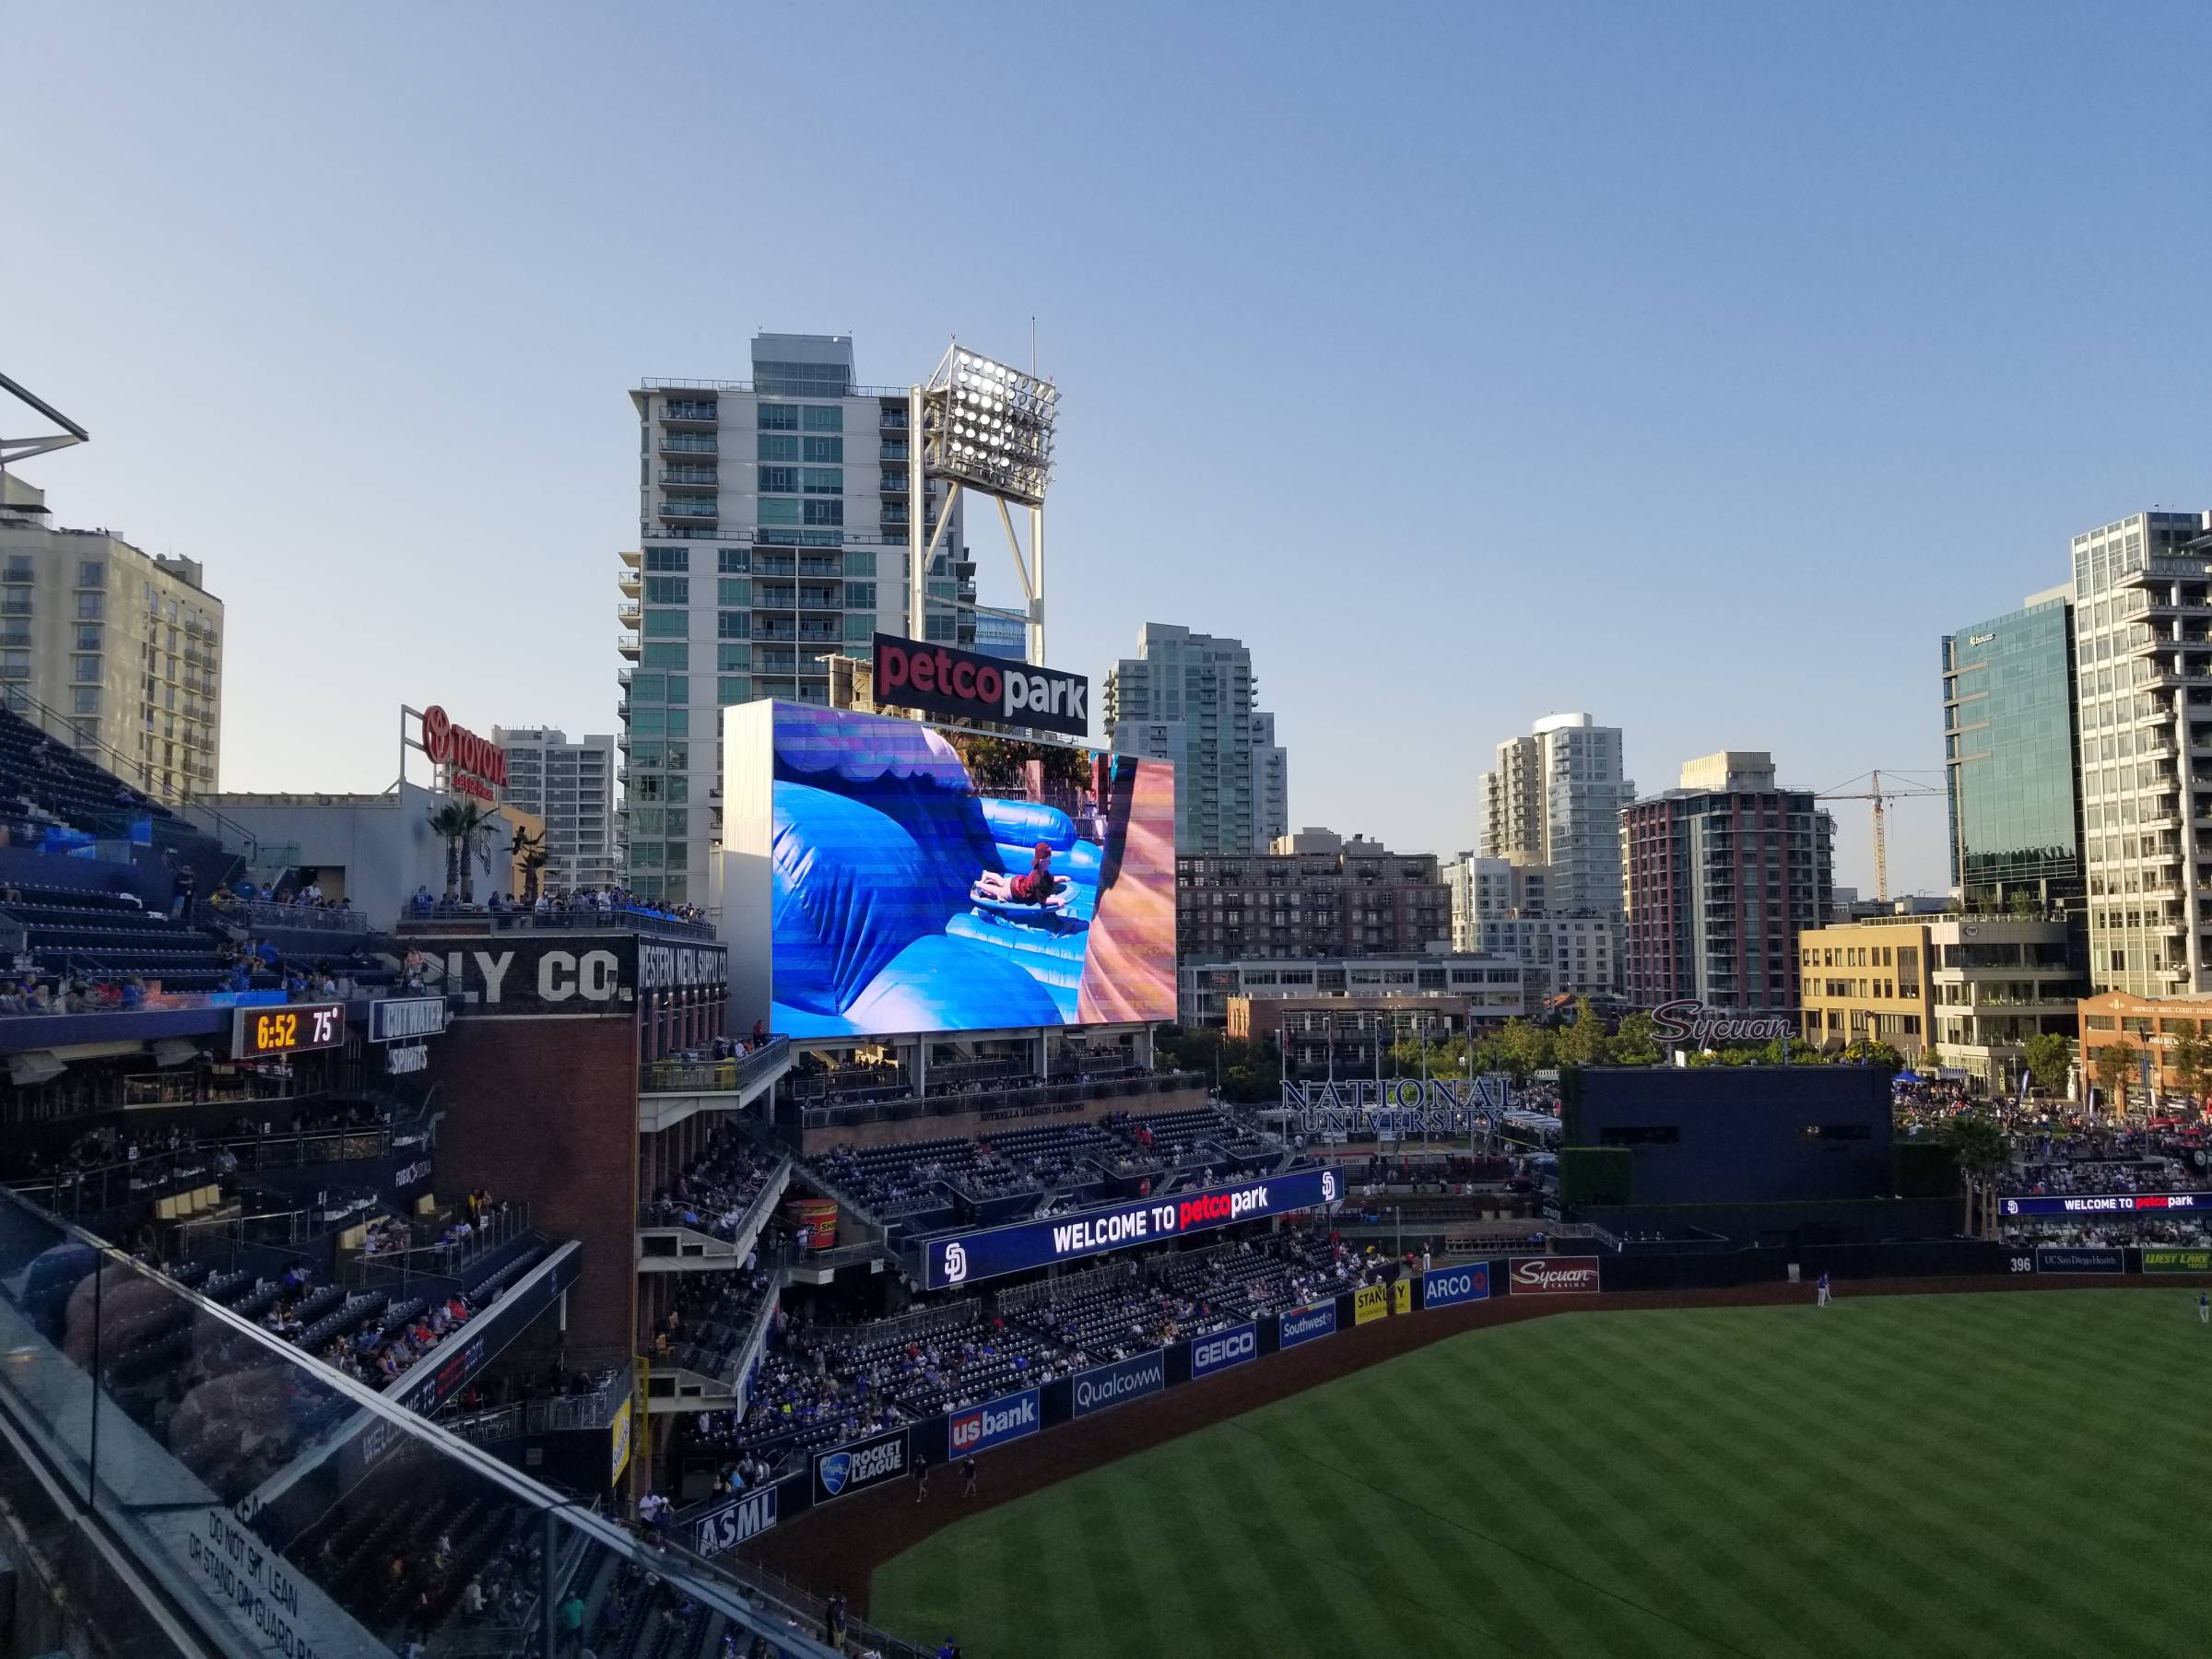 Petco Park Seating For Padres Games Rateyourseats Com